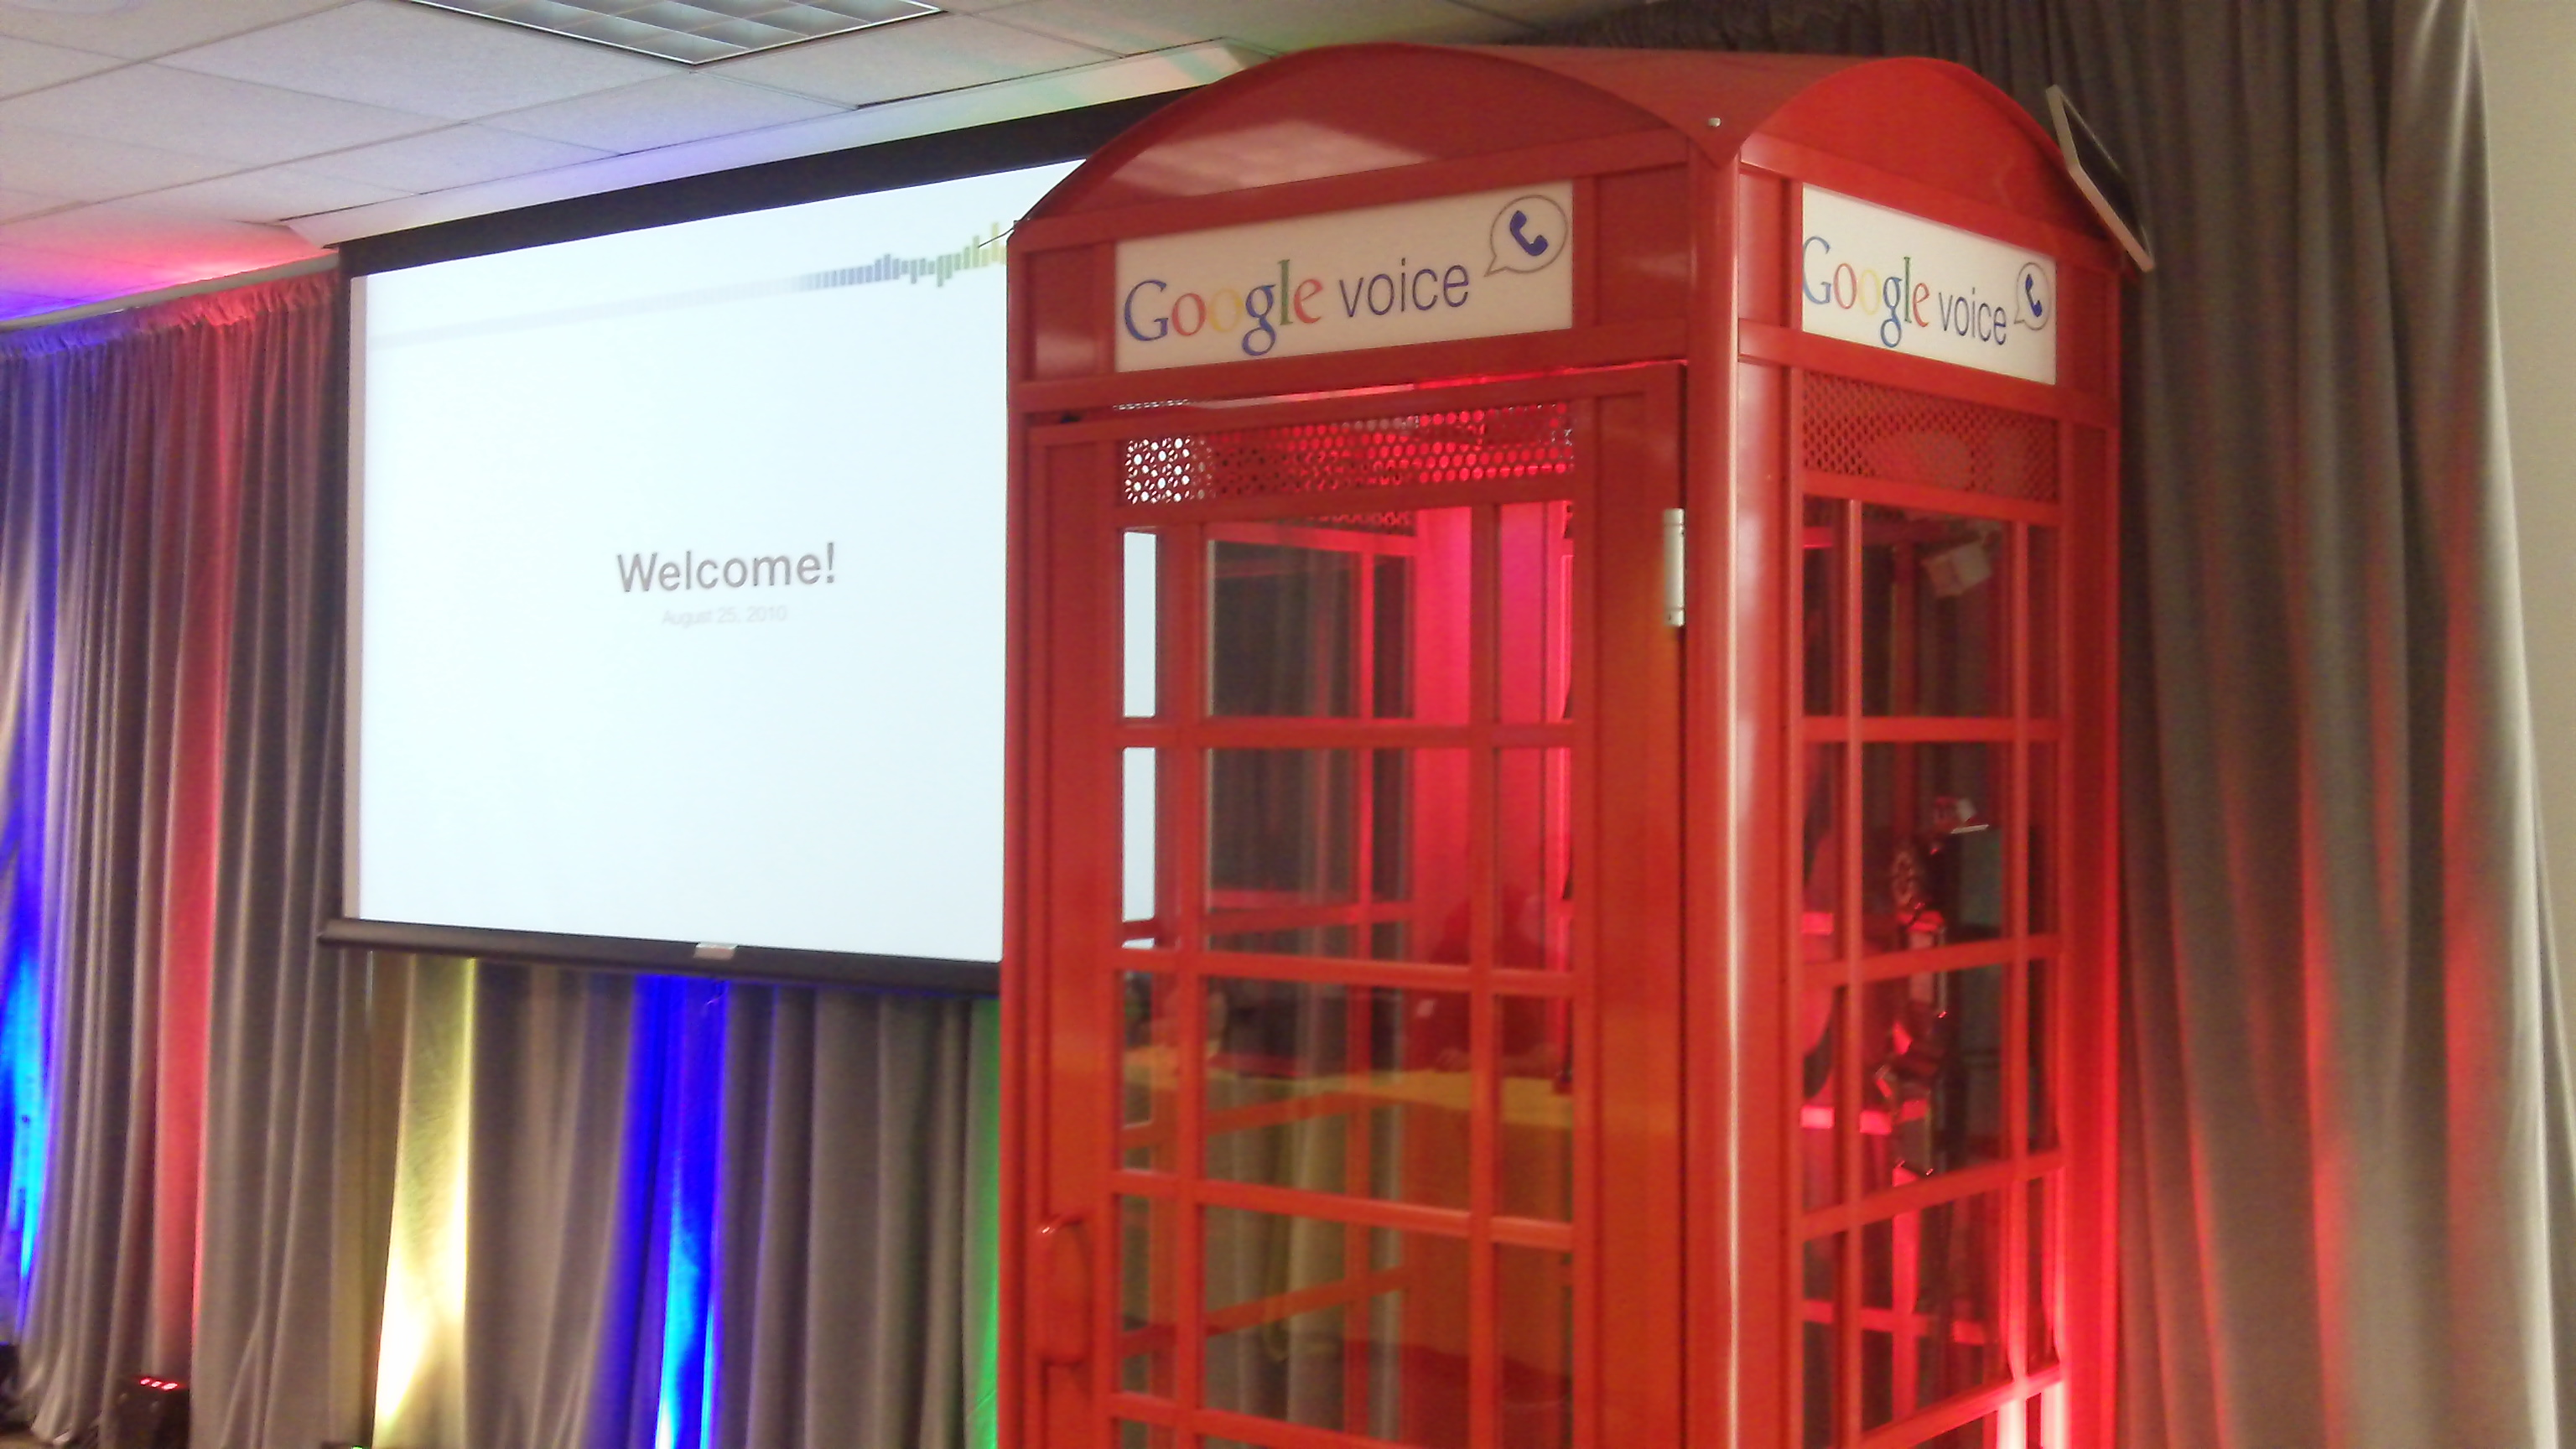 Google Officially Adds Google Voice To Gmail